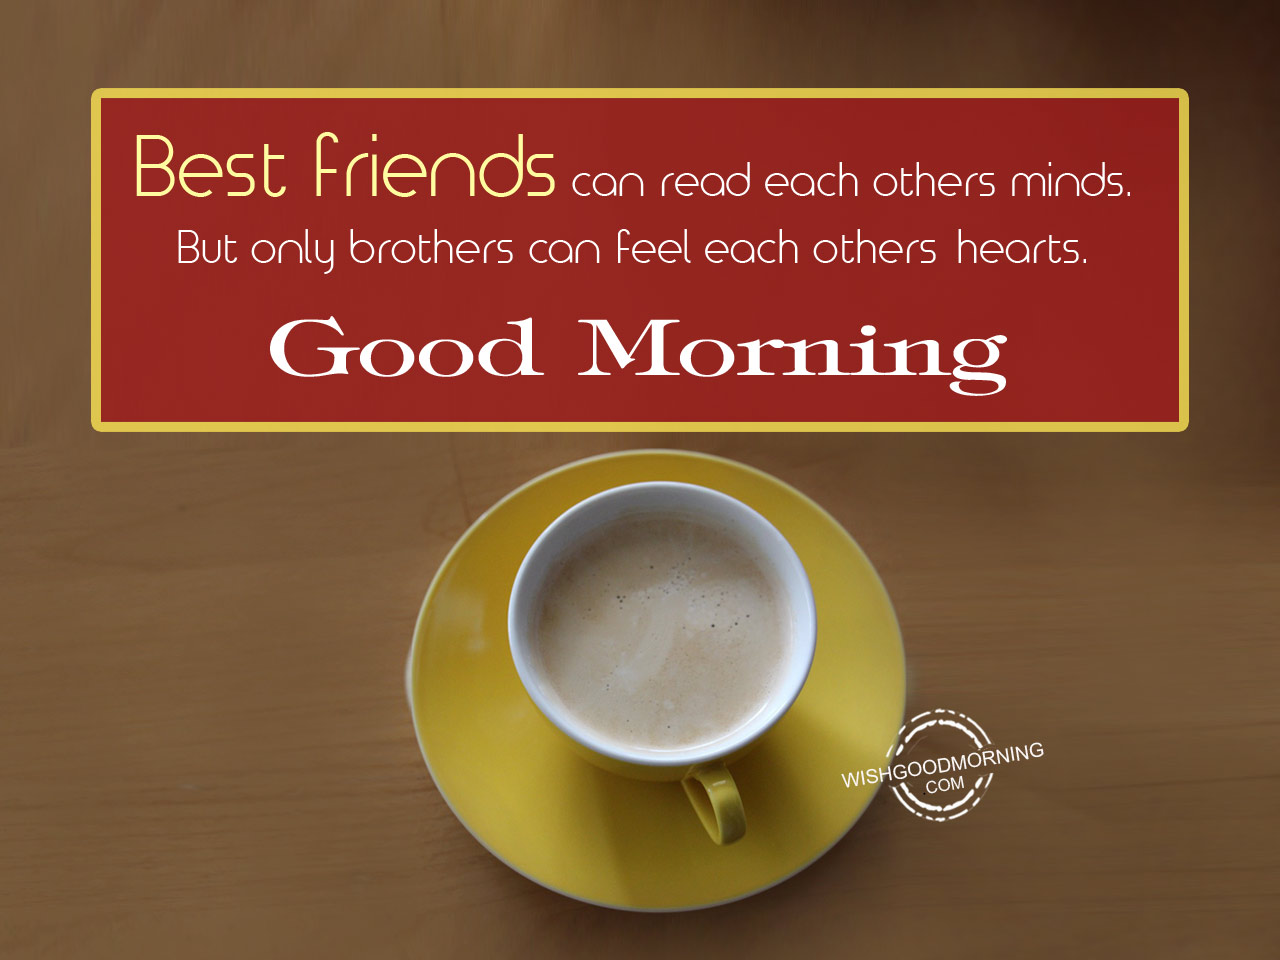 Good morning wishes for brother good morning pictures best firends can read each others mind kristyandbryce Images